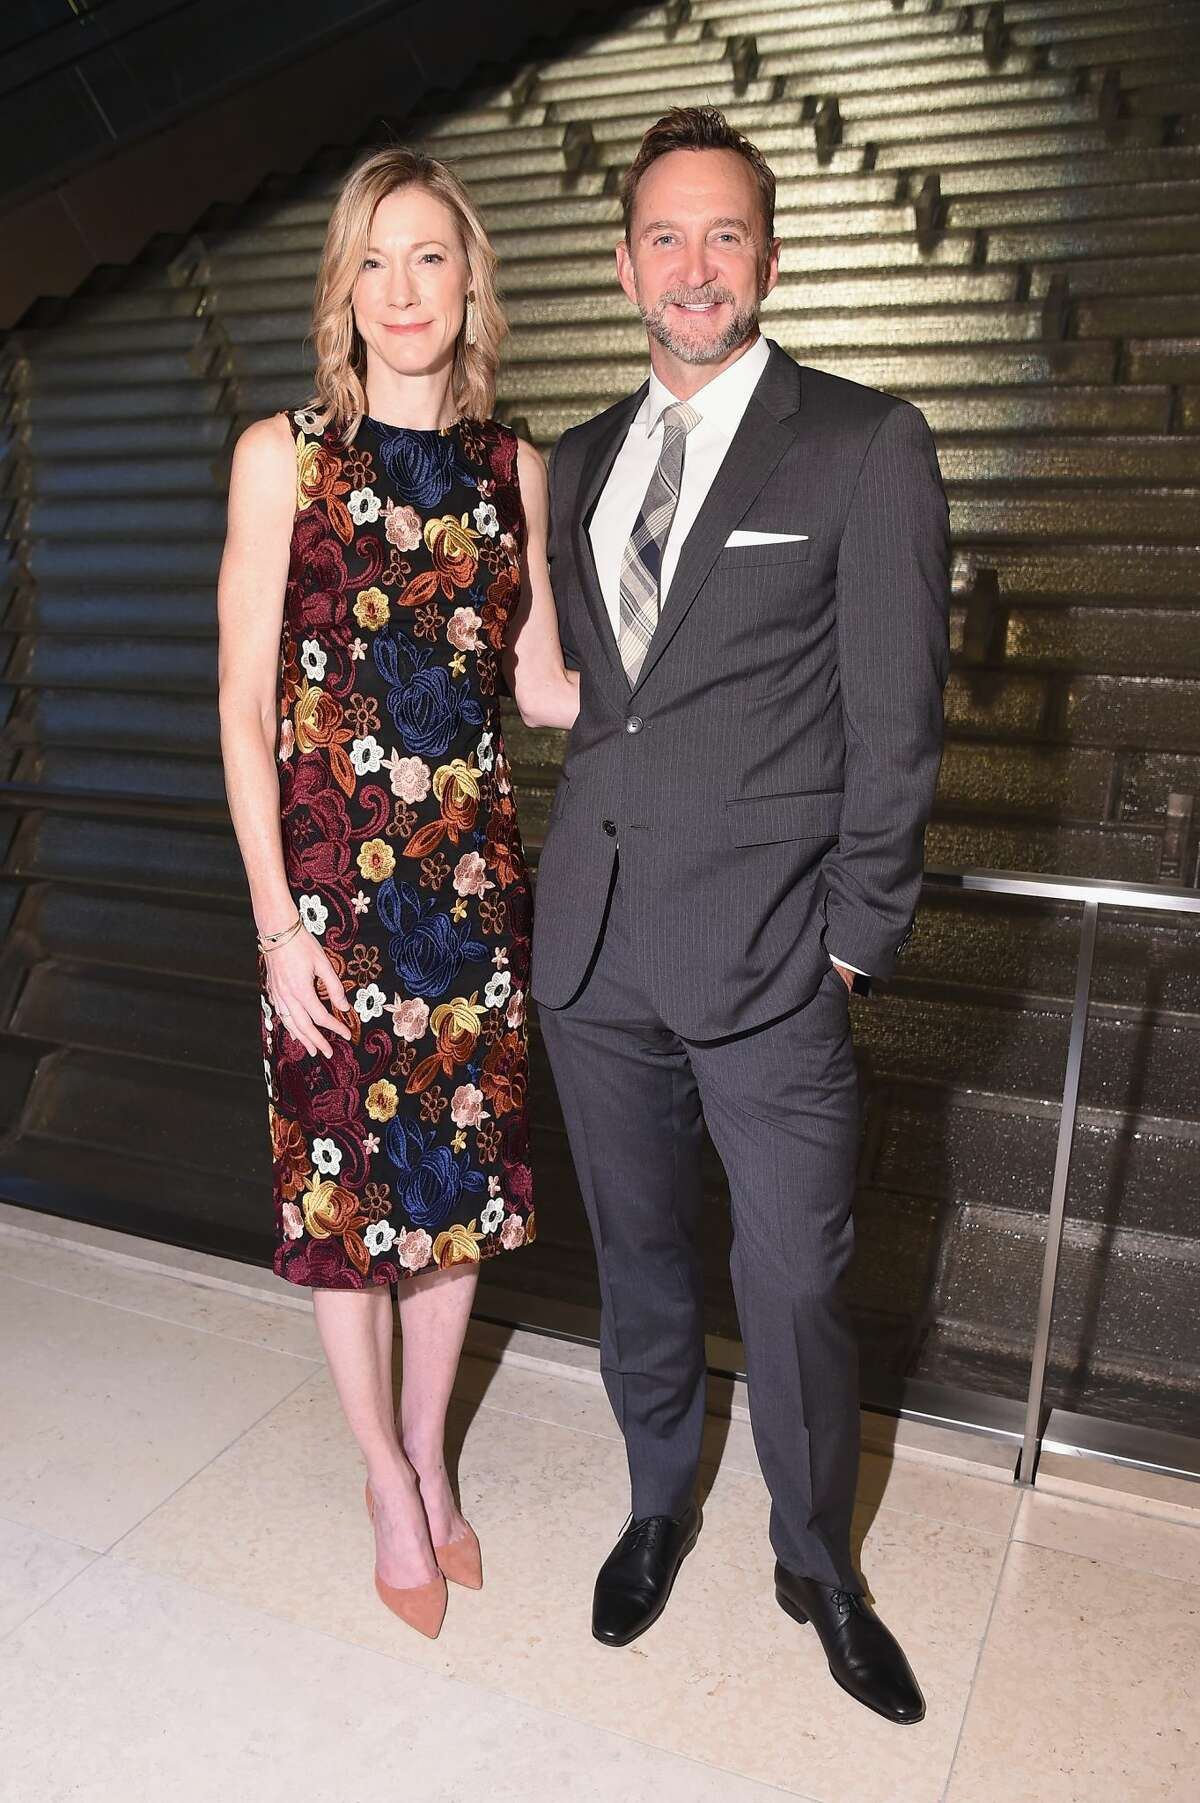 NEW YORK, NY - SEPTEMBER 27: Editor in Chief of Woman's Day Susan Spencer and TV Personality Clinton Kelly attend the Hearst launch of HearstLive, a multimedia news installation, at 57th Street & 8th Avenue on September 27, 2016 in New York City. (Photo by Michael Loccisano/Getty Images for Hearst)